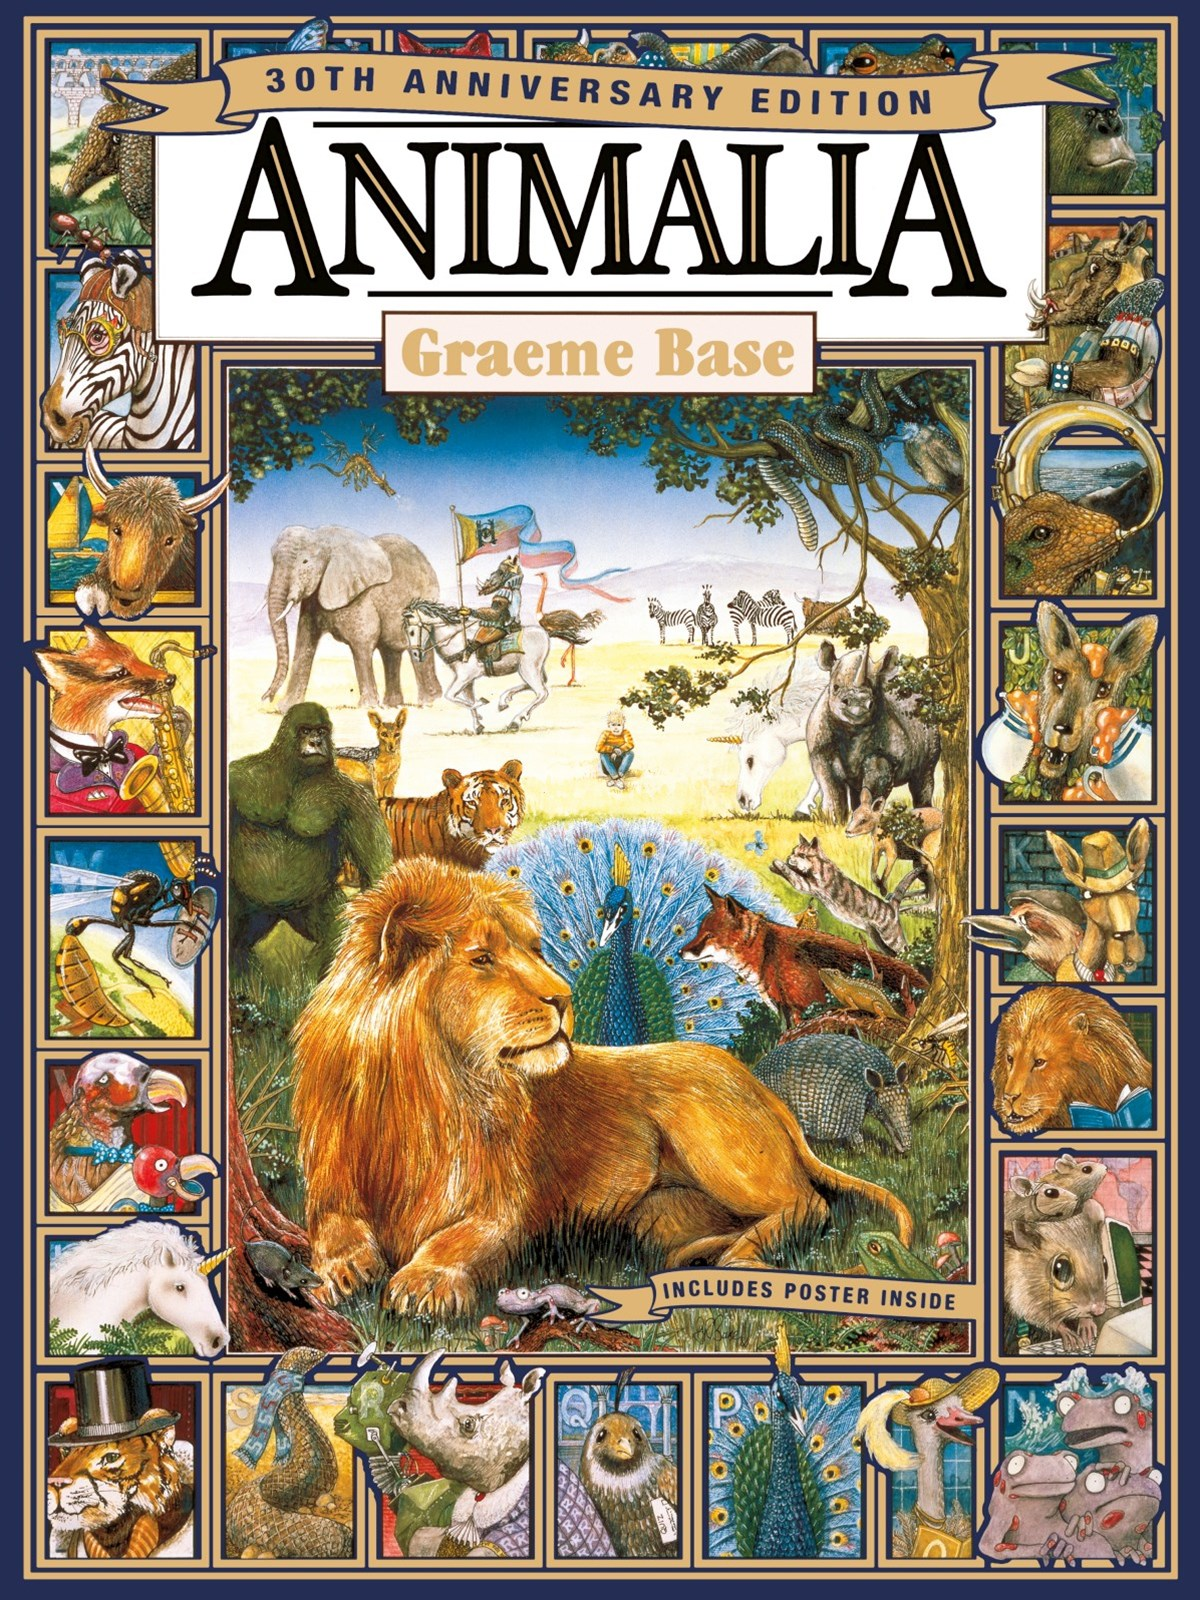 Animalia 30th Anniversary Edition